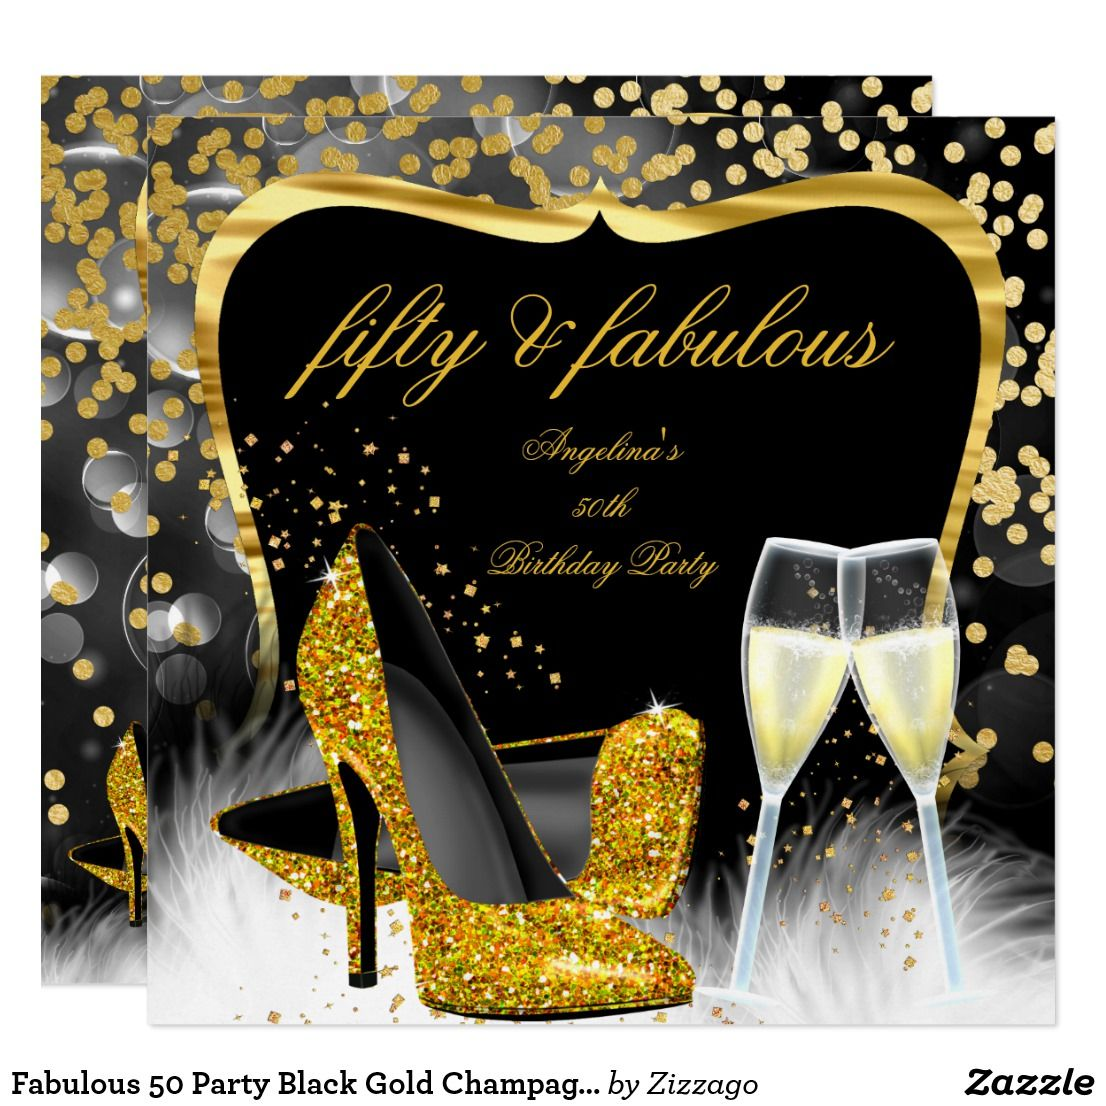 Fabulous 50 Party Black Gold Champagne High Heel Invitation   Zazzle.com in  2020   Elegant birthday party, 50th party, 50th birthday invitations